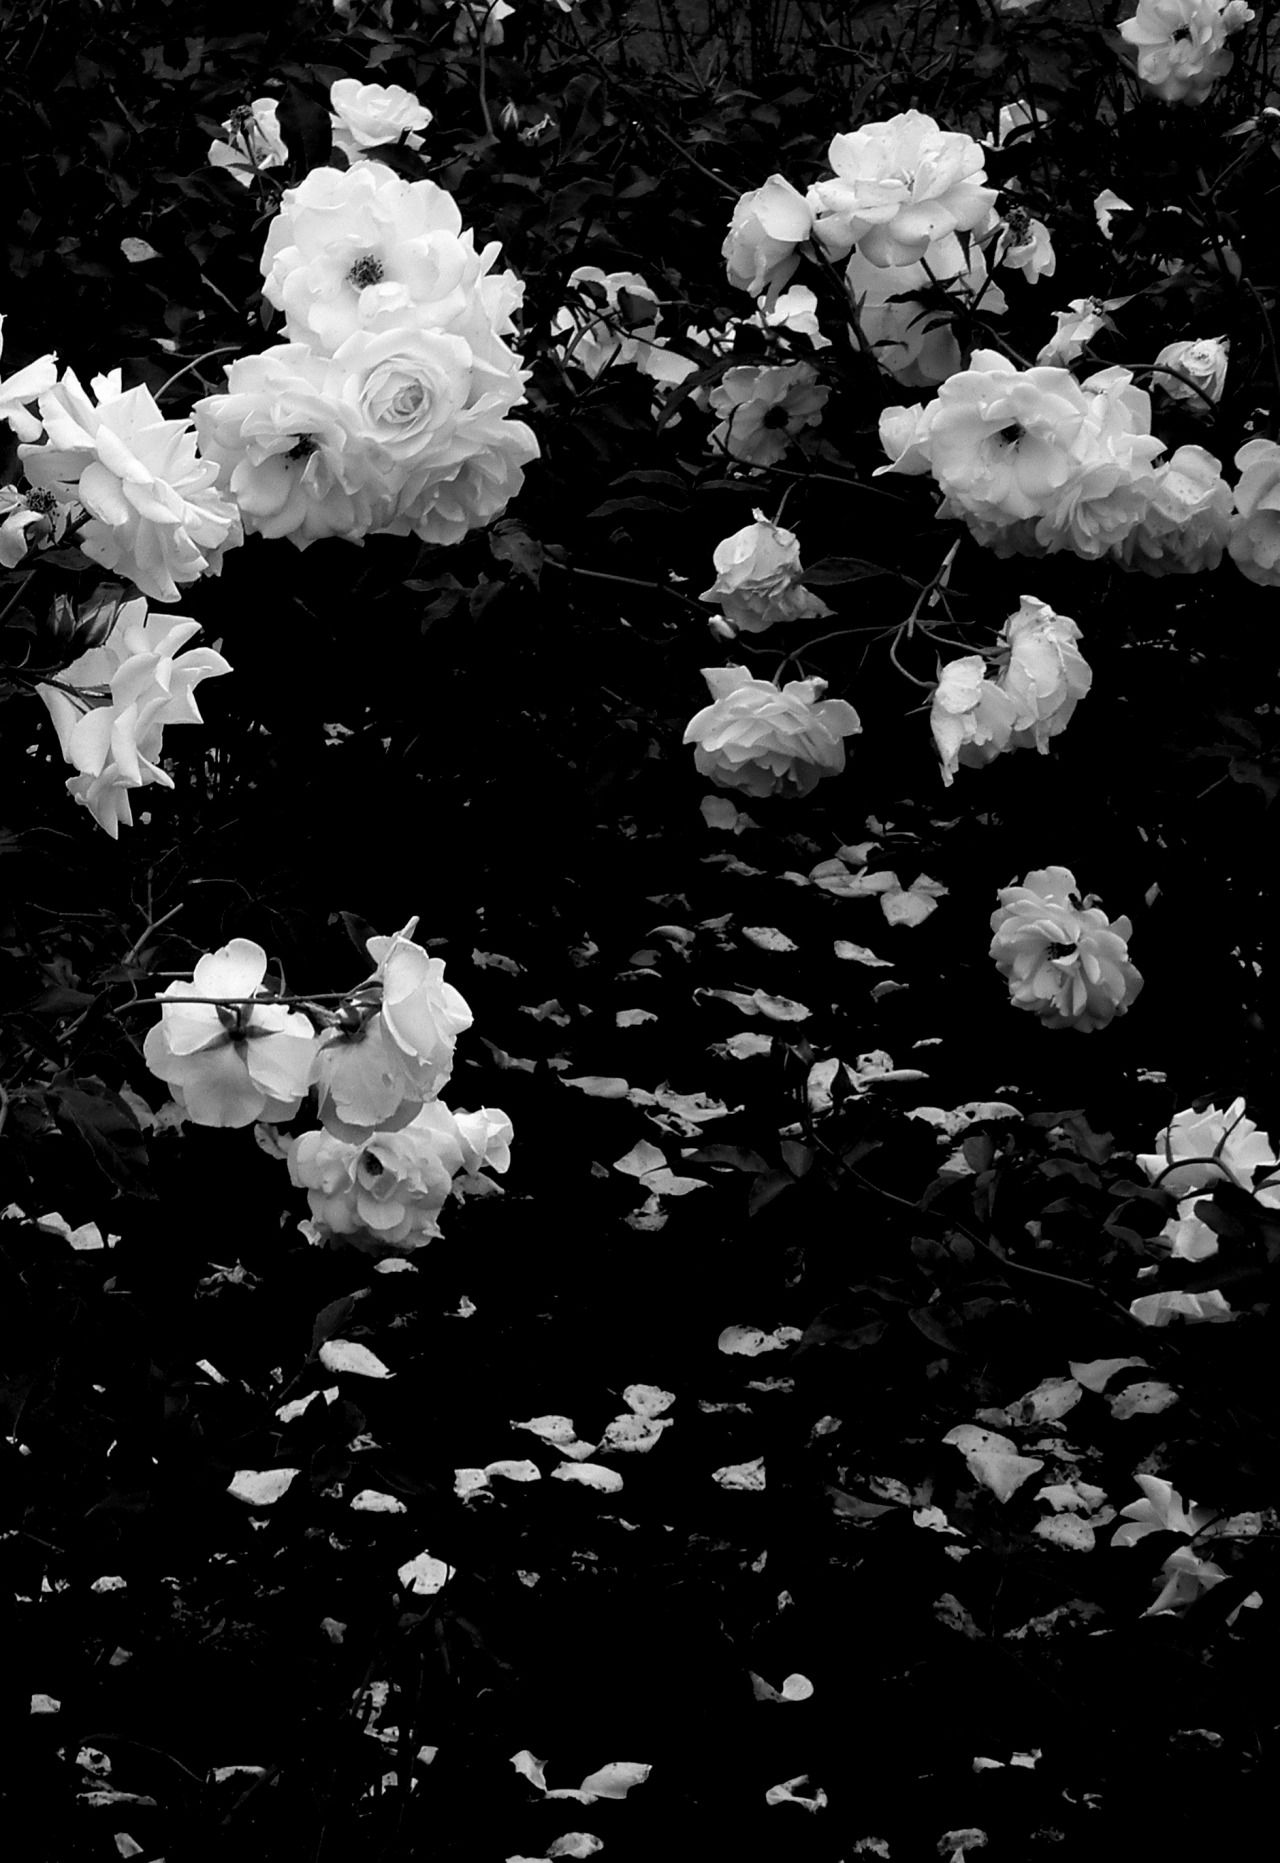 Devore Black And White Roses Black Aesthetic Wallpaper Dark Flowers